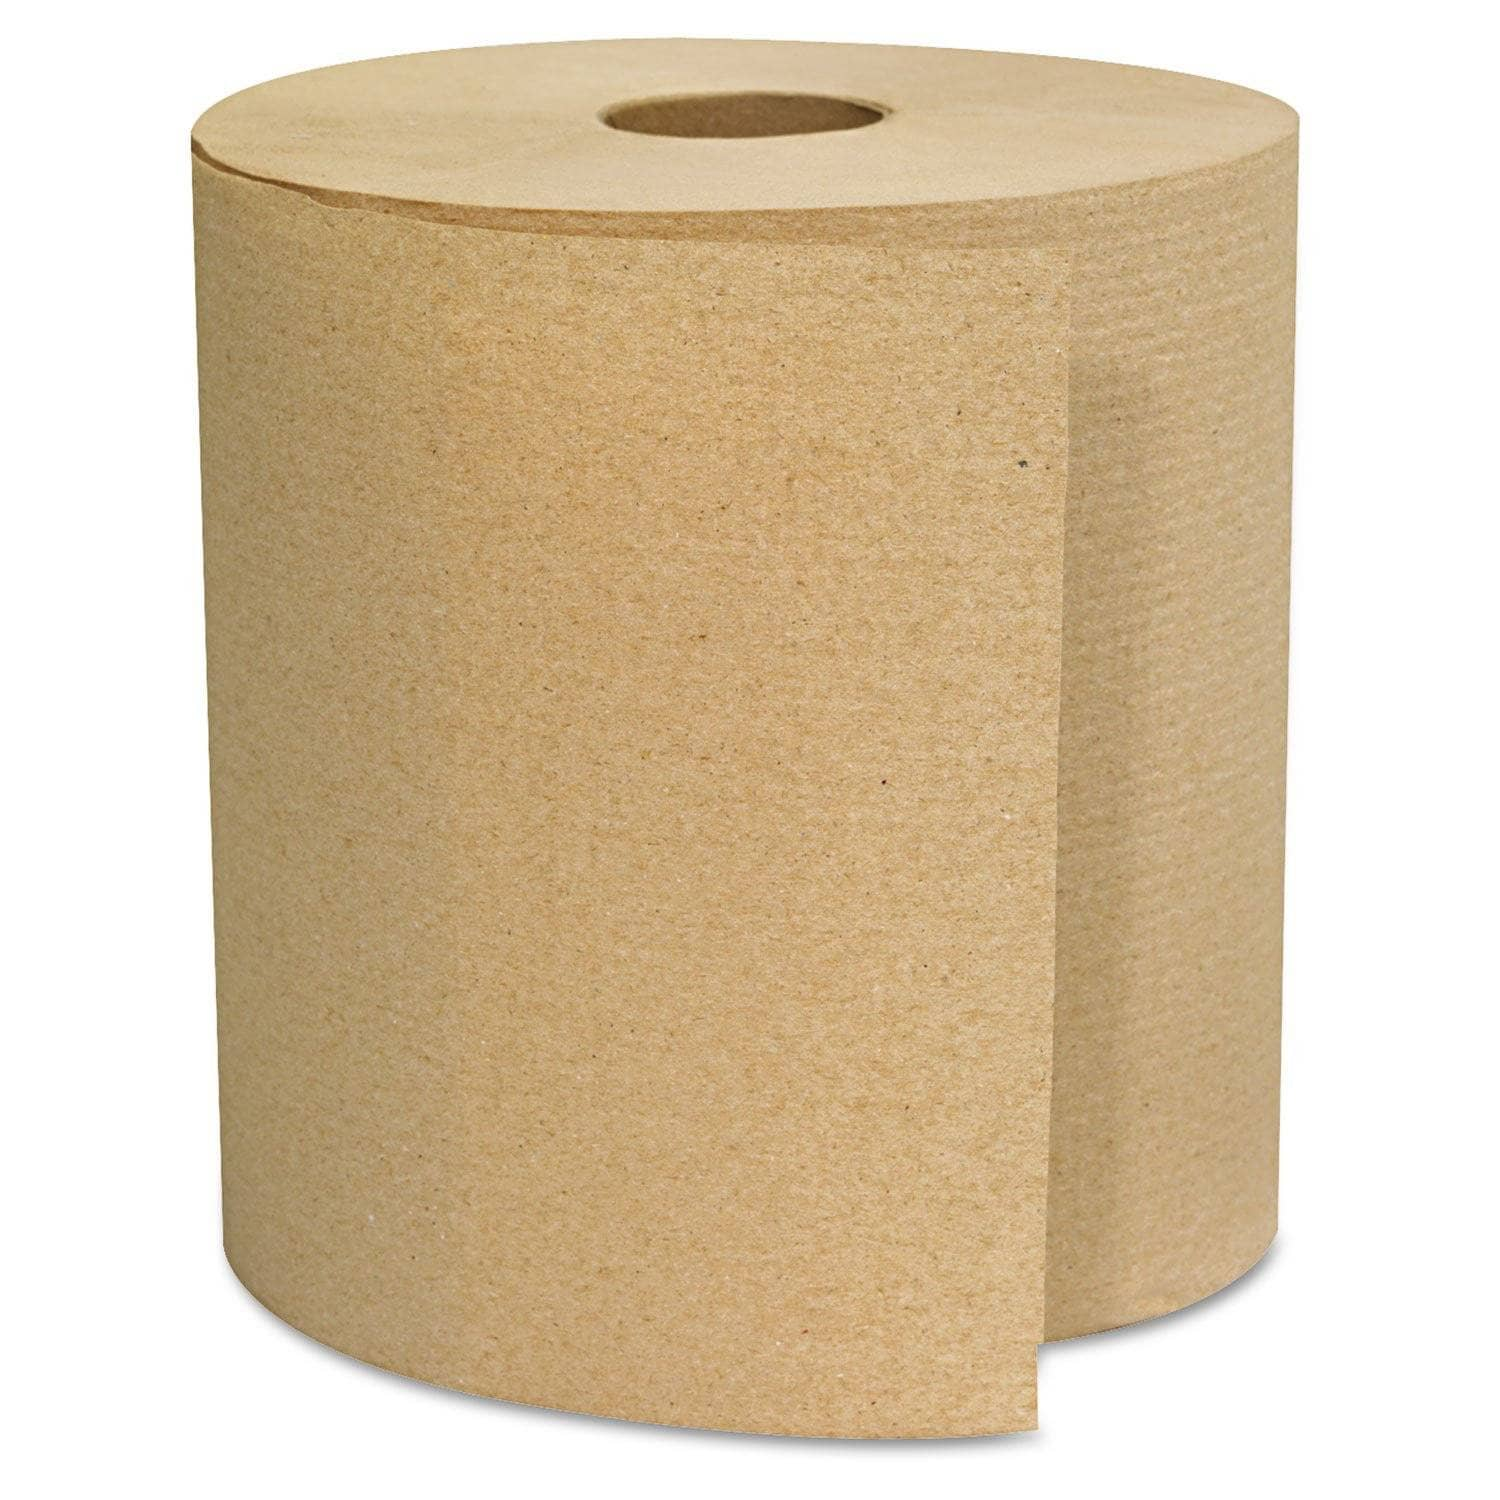 GEN Hardwound Towels, Brown, 1-Ply, Brown, 800Ft, 6 Rolls/Carton - GEN1825 - TotalRestroom.com